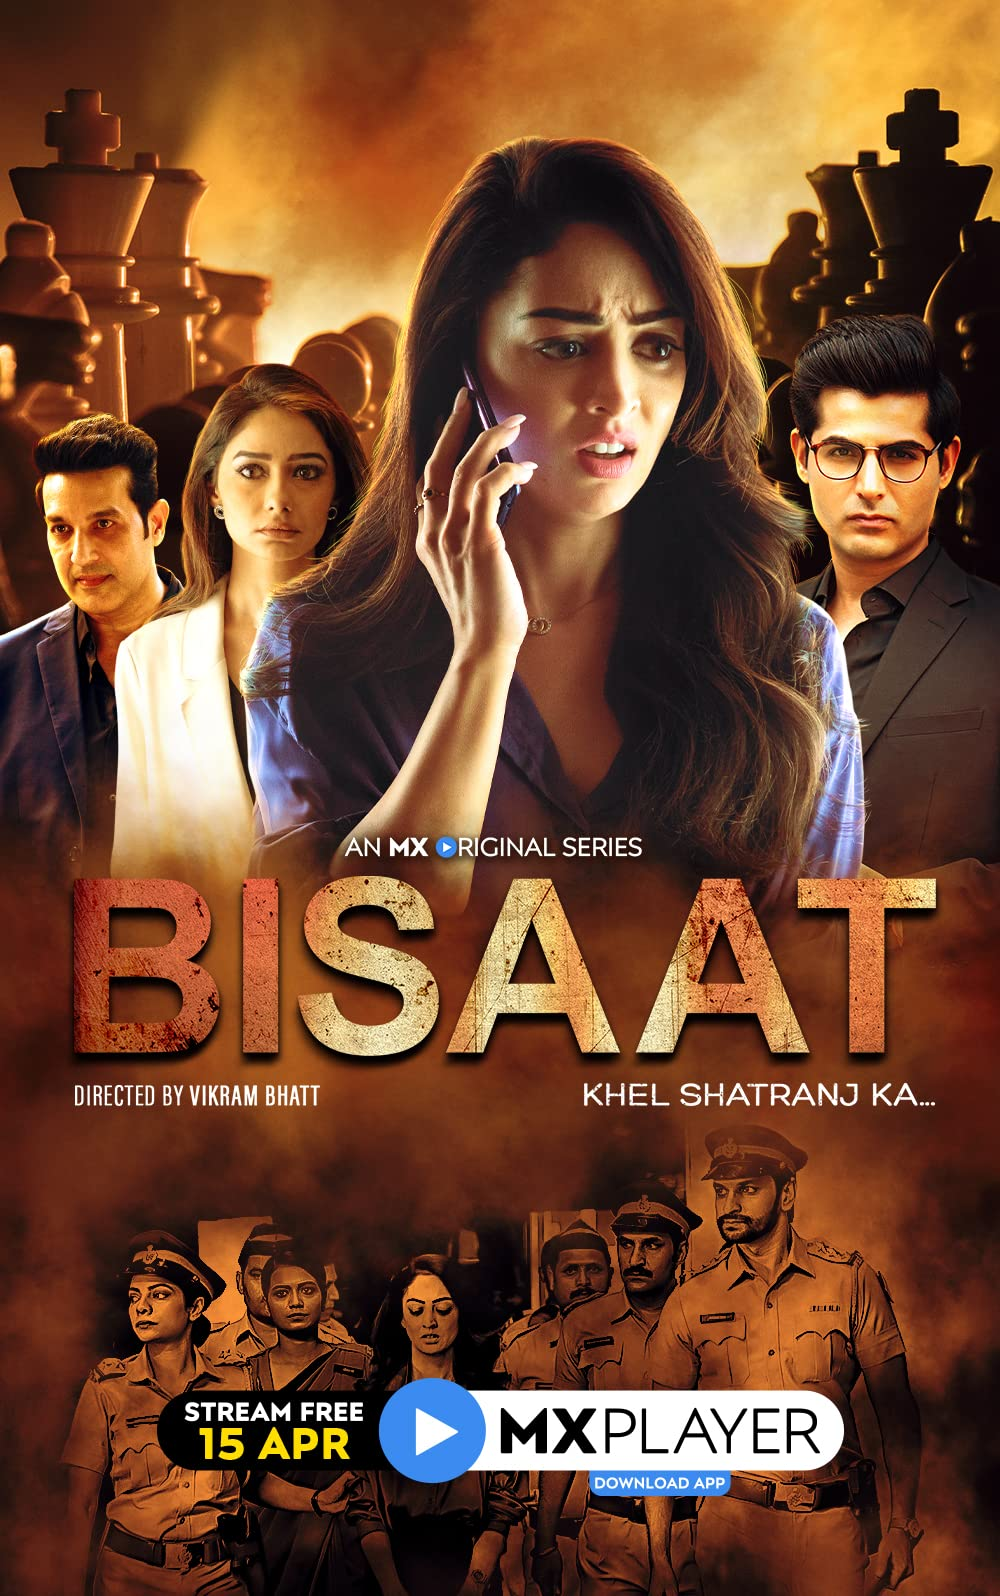 Download Bisaat: Khel Shatranj Ka 2021 S01 Hindi MX Original Complete Web Series 720p HDRip 1.5GB